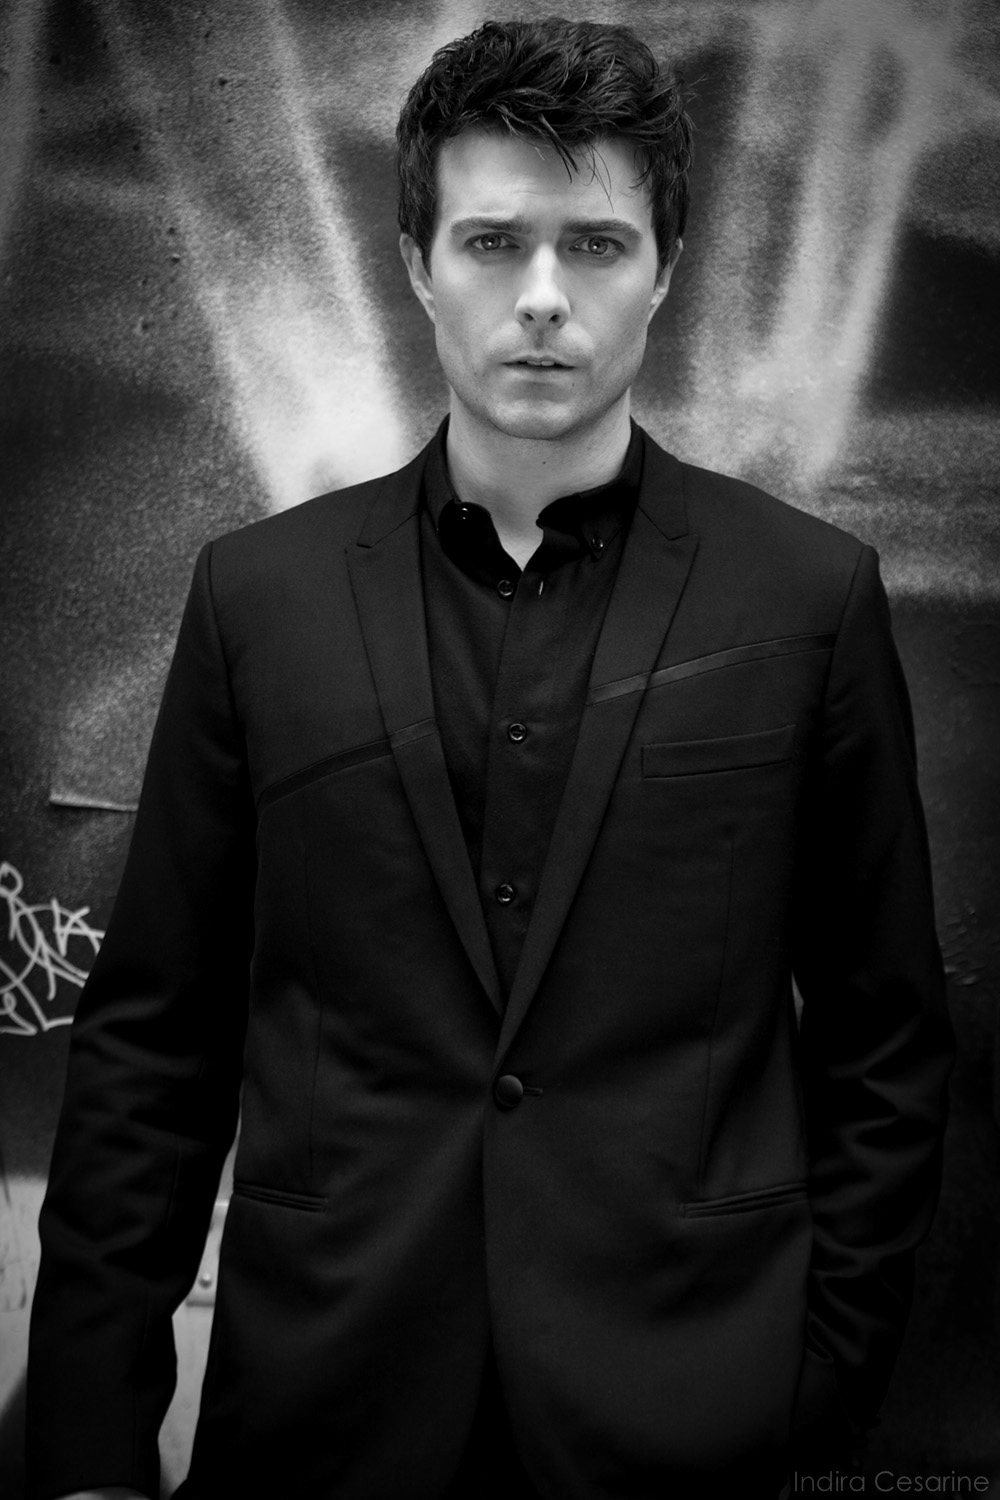 Noah-Bean-Photography-by-Indira-Cesarine-005-bw.jpg